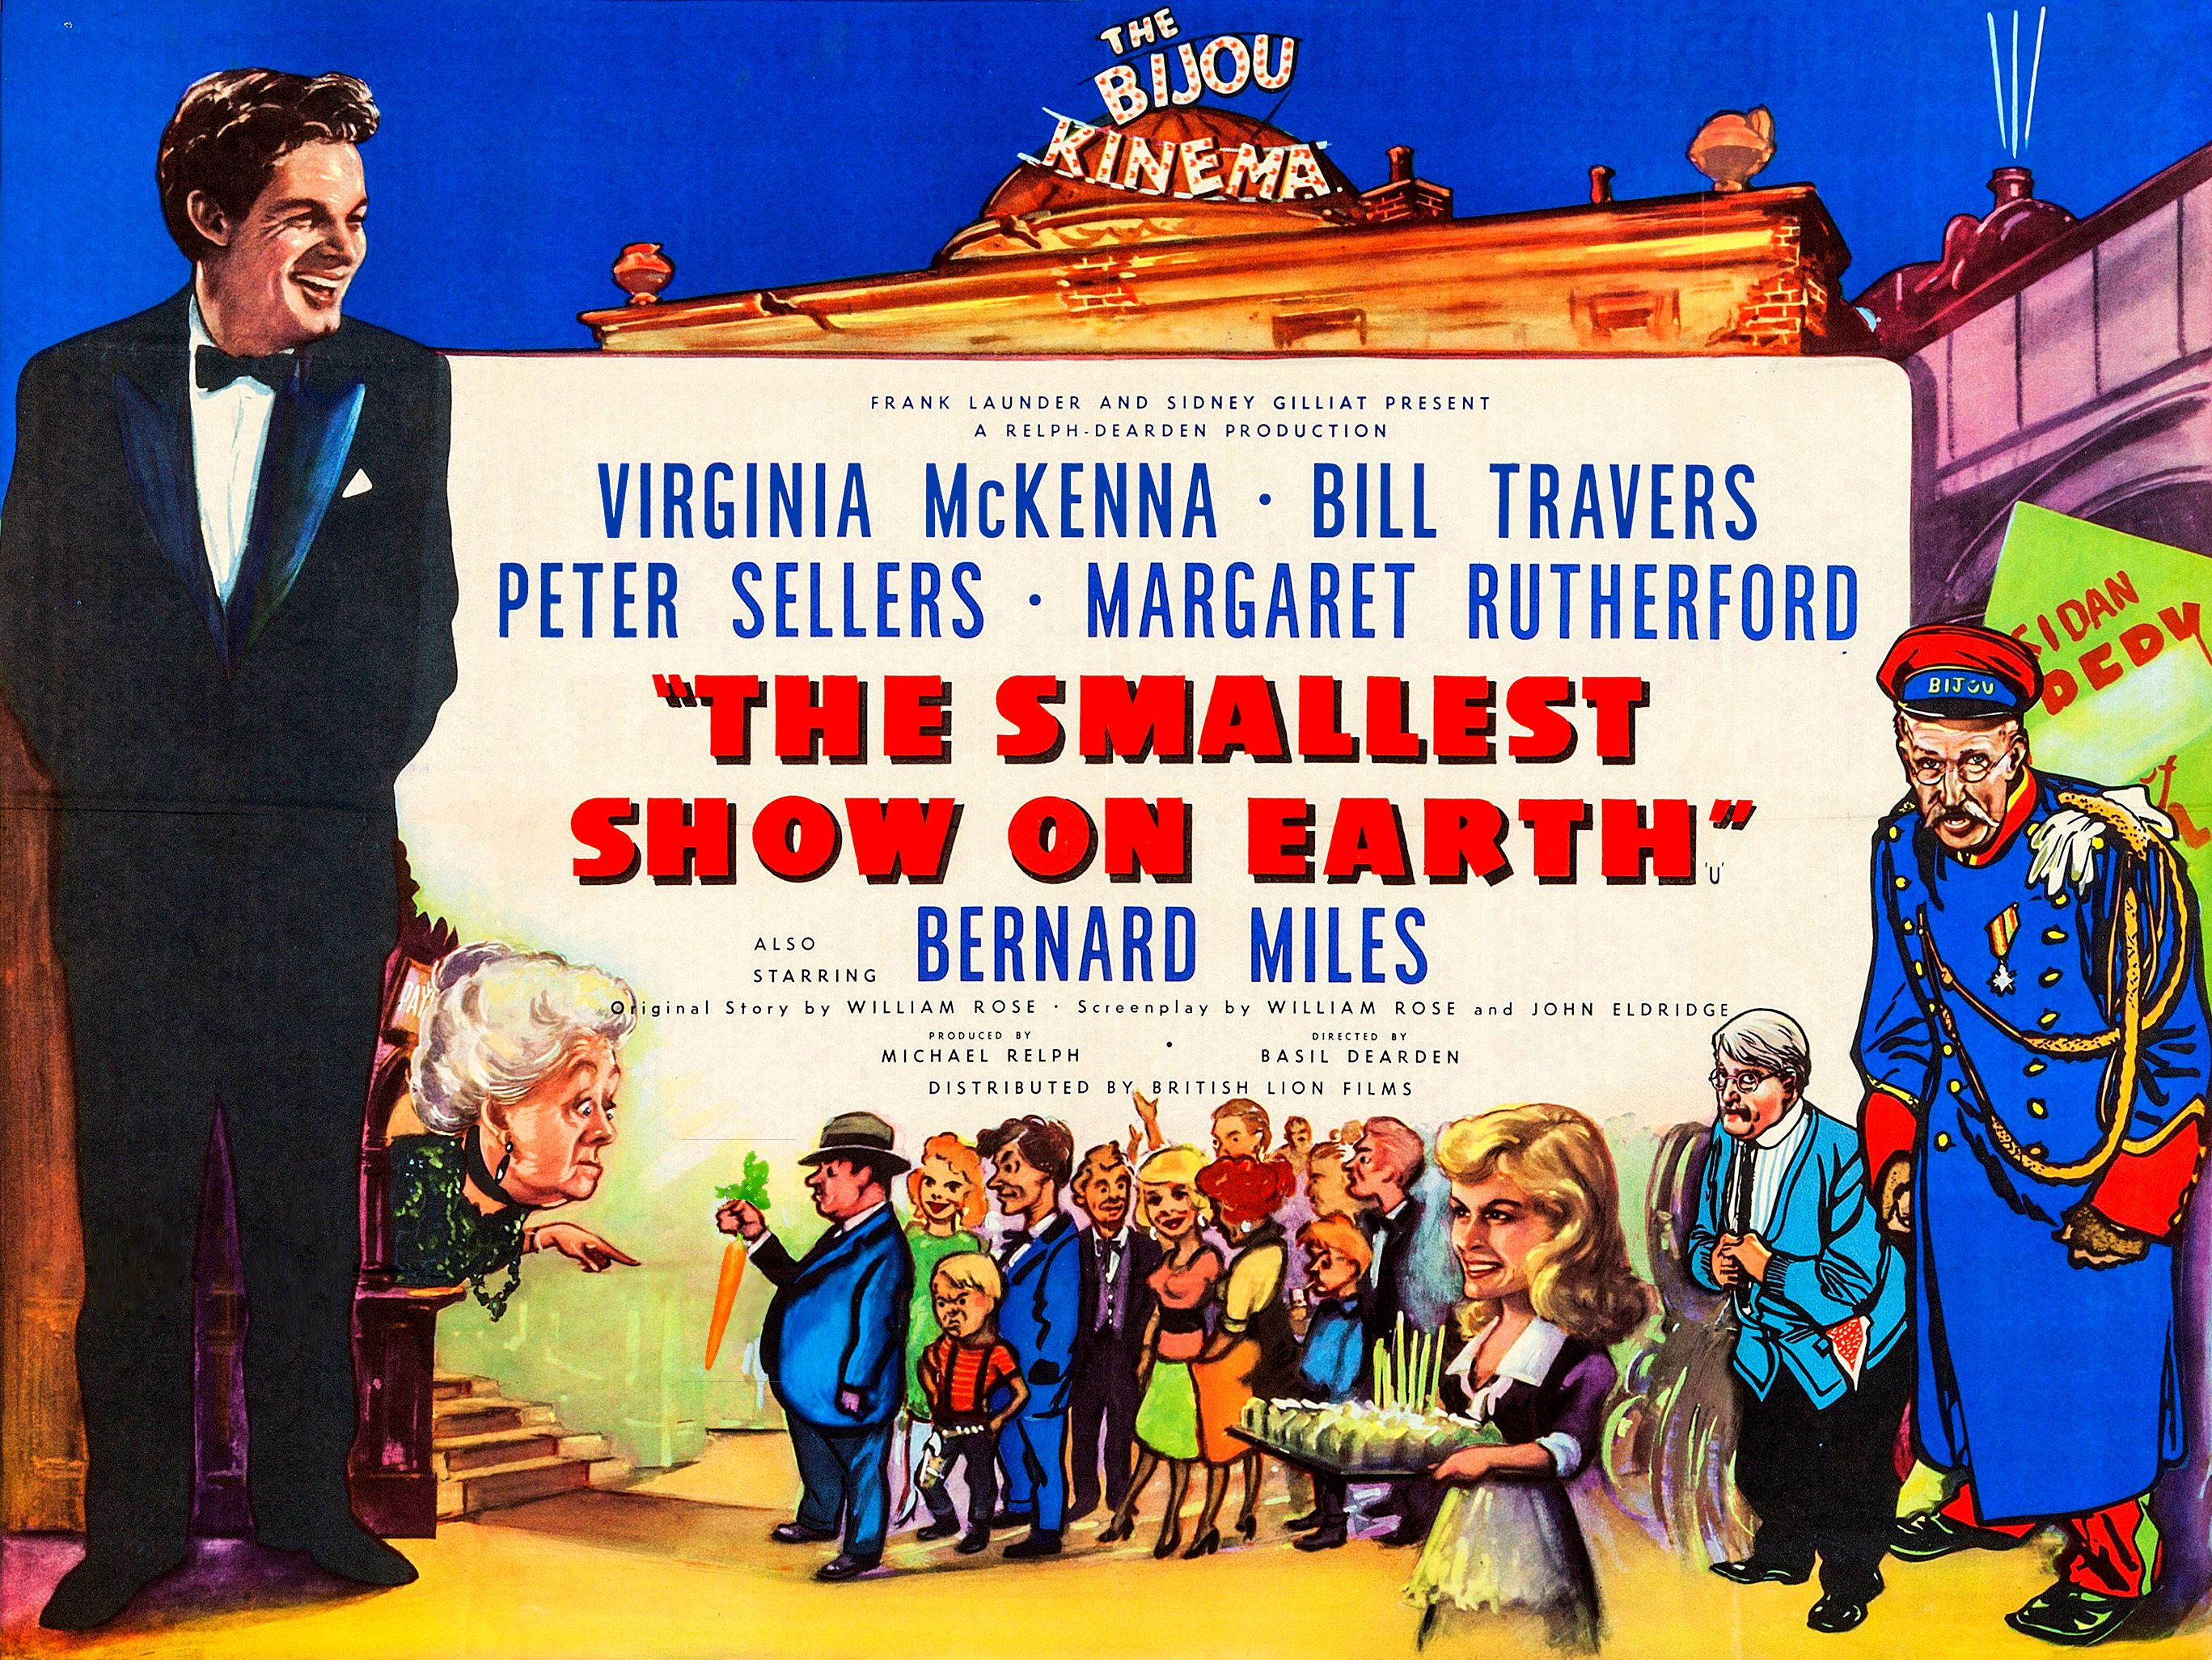 The Smallest Show on Earth (1957)   Classic films posters, Best movie  posters, Classic films